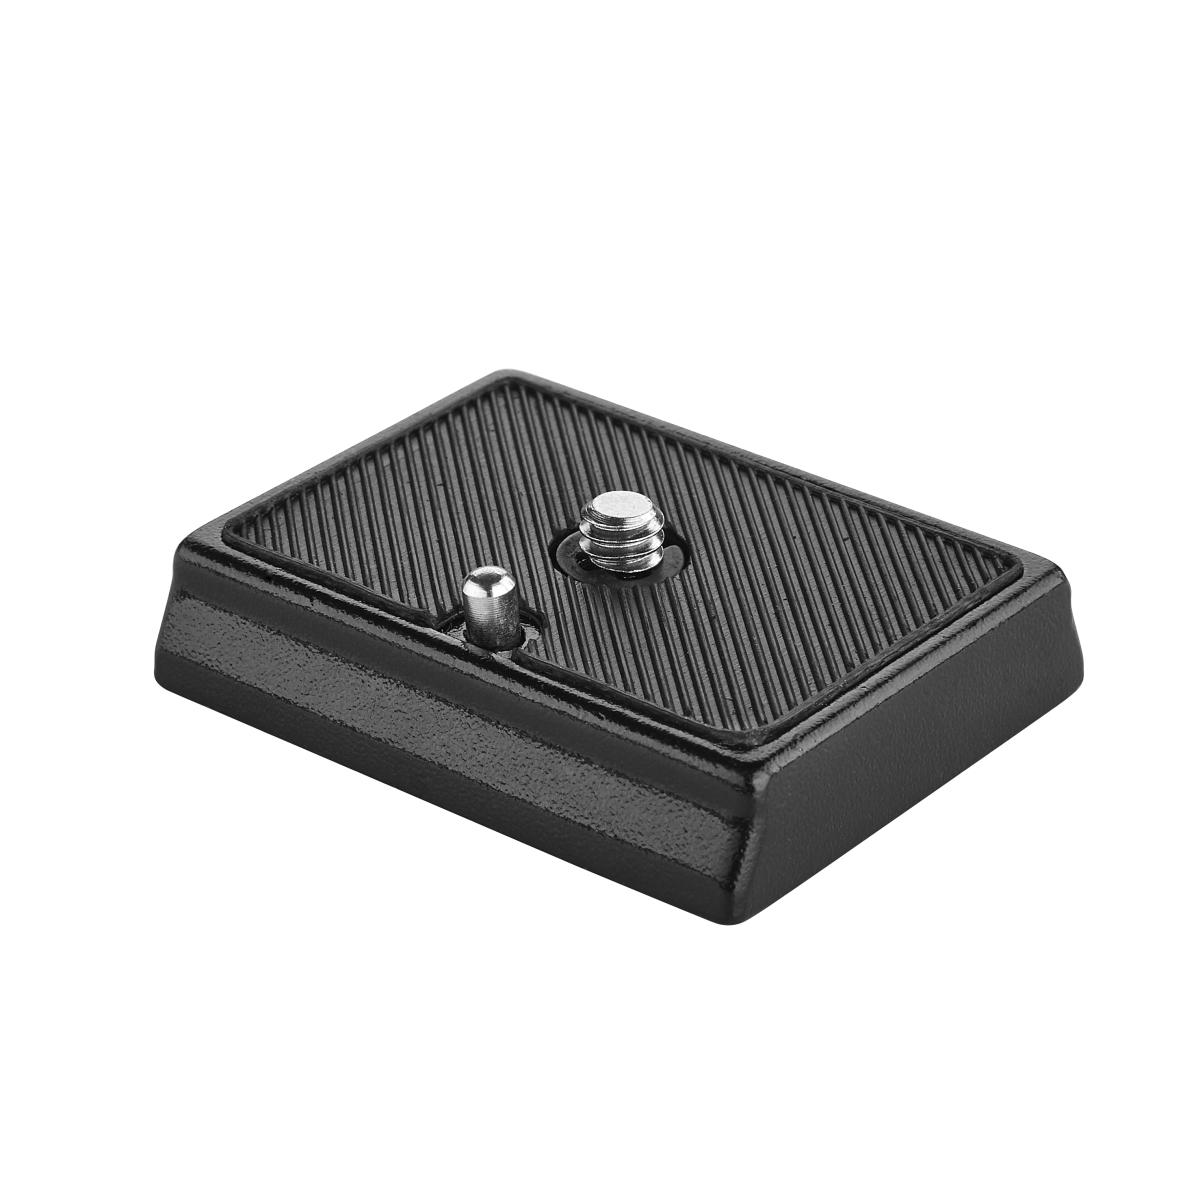 Walimex FT-001P Quick Release Plate, 1/4 inch